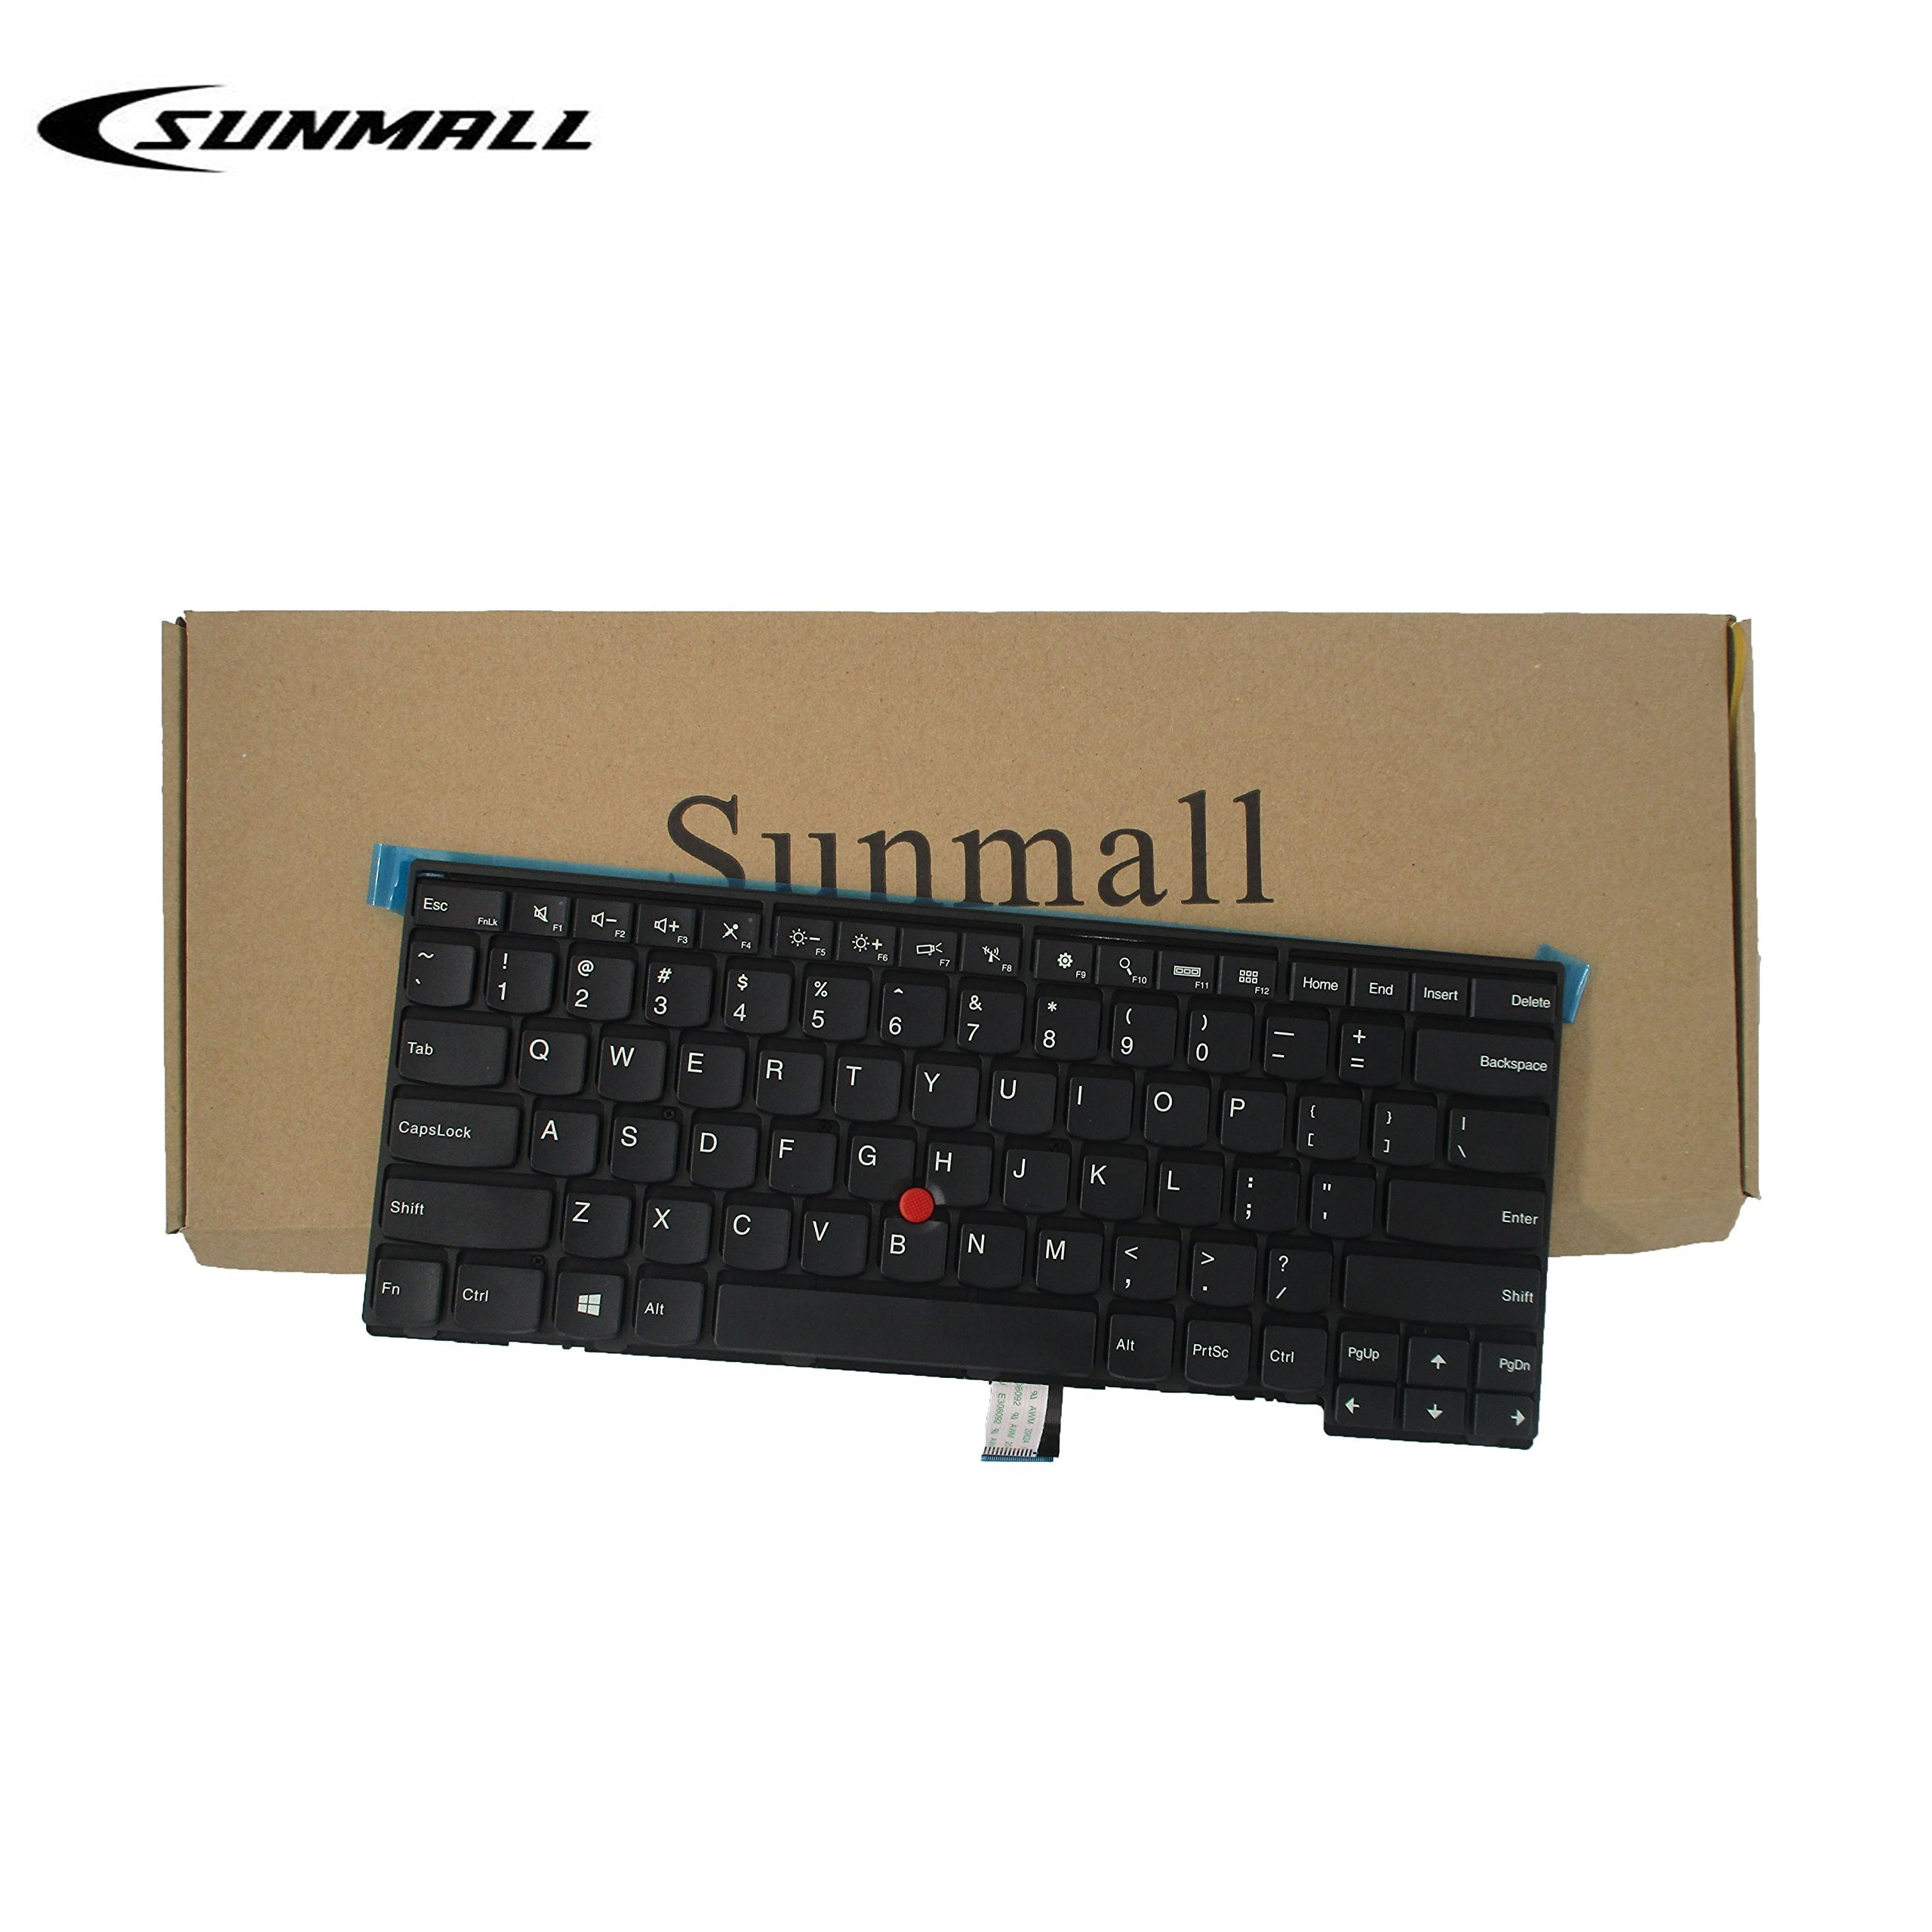 US Layout Keyboard for Lenovo Thinkpad T440 T440p T440s T450 T450s T460 T431s L440 L450 L460 Compatible